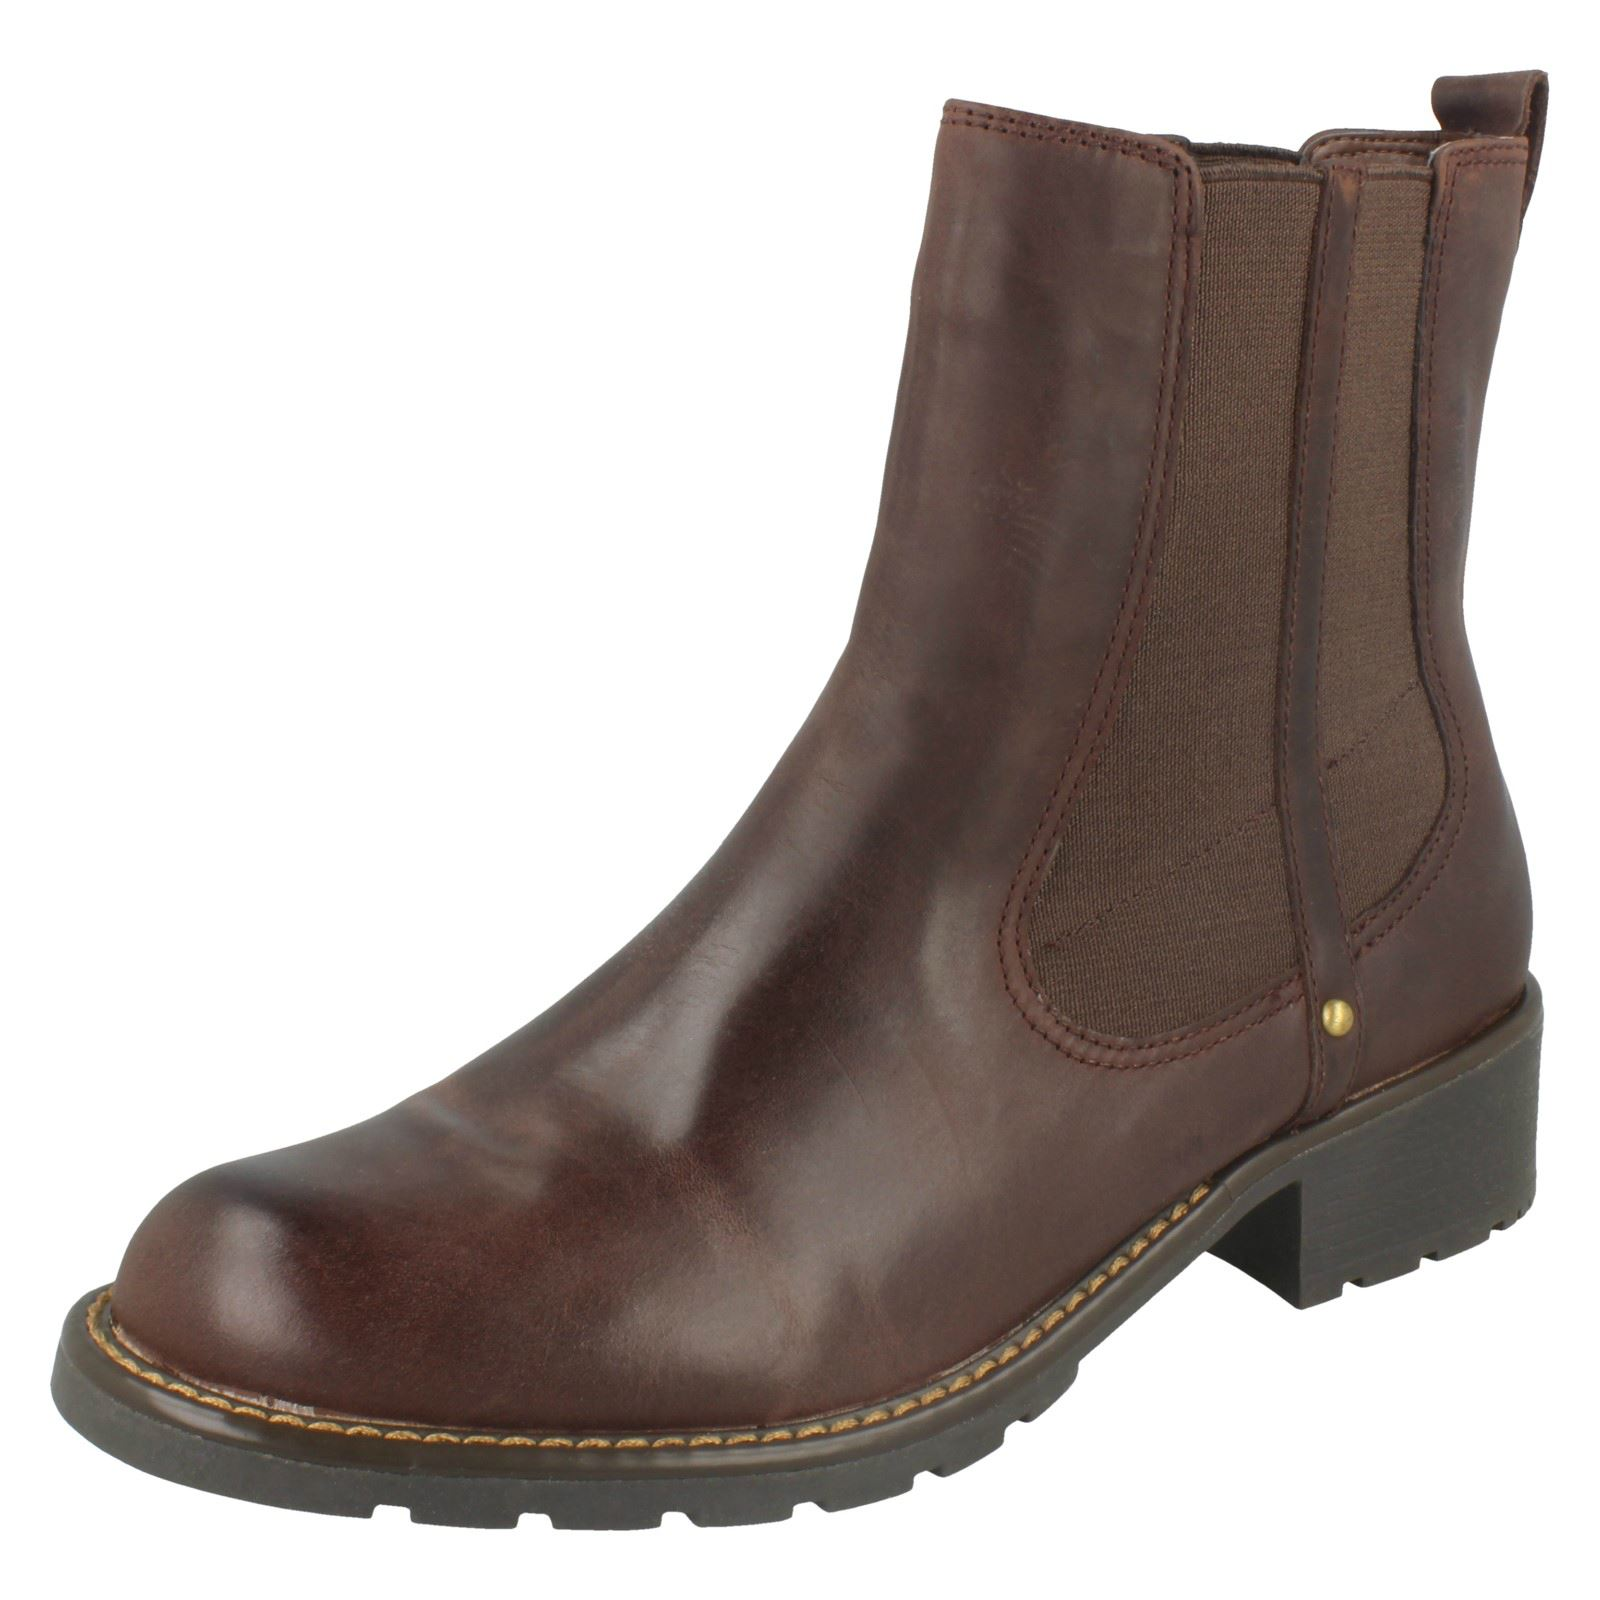 Ladies Clarks Chelsea Pull on BOOTS Orinoco Club 6.5 UK Burgundy D ... b2a0bba9c686